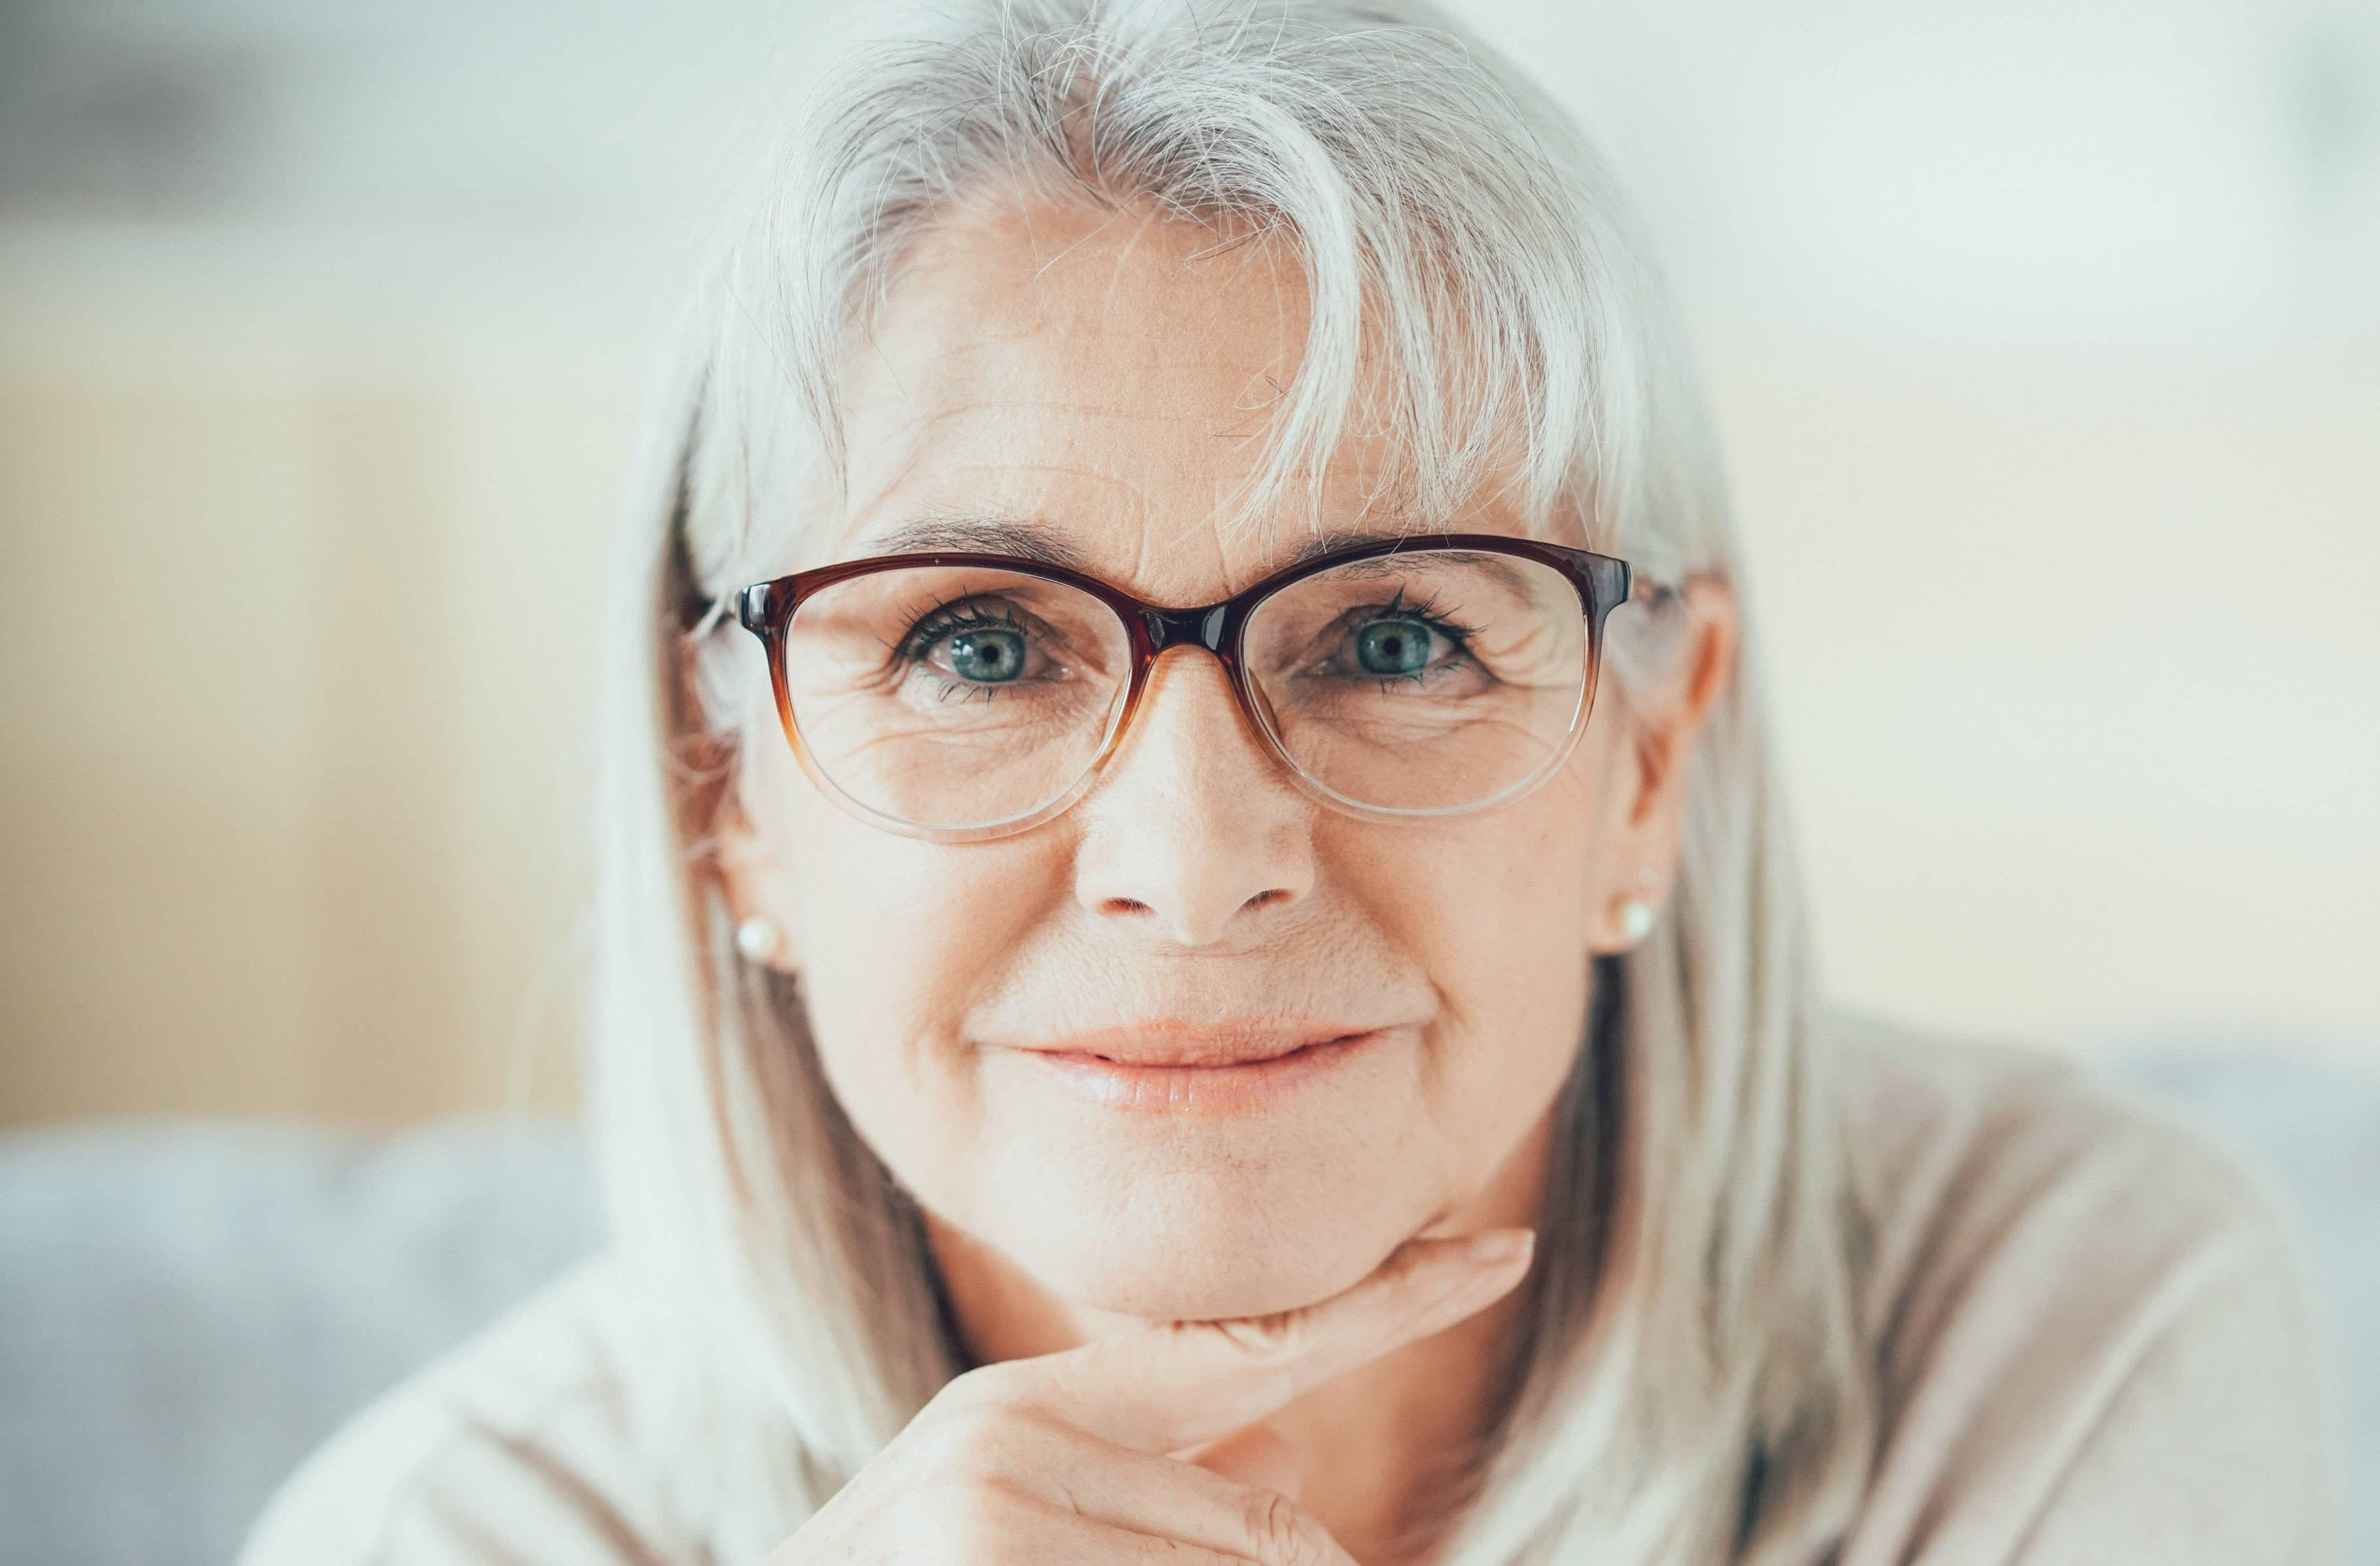 Cataract is an eye condition